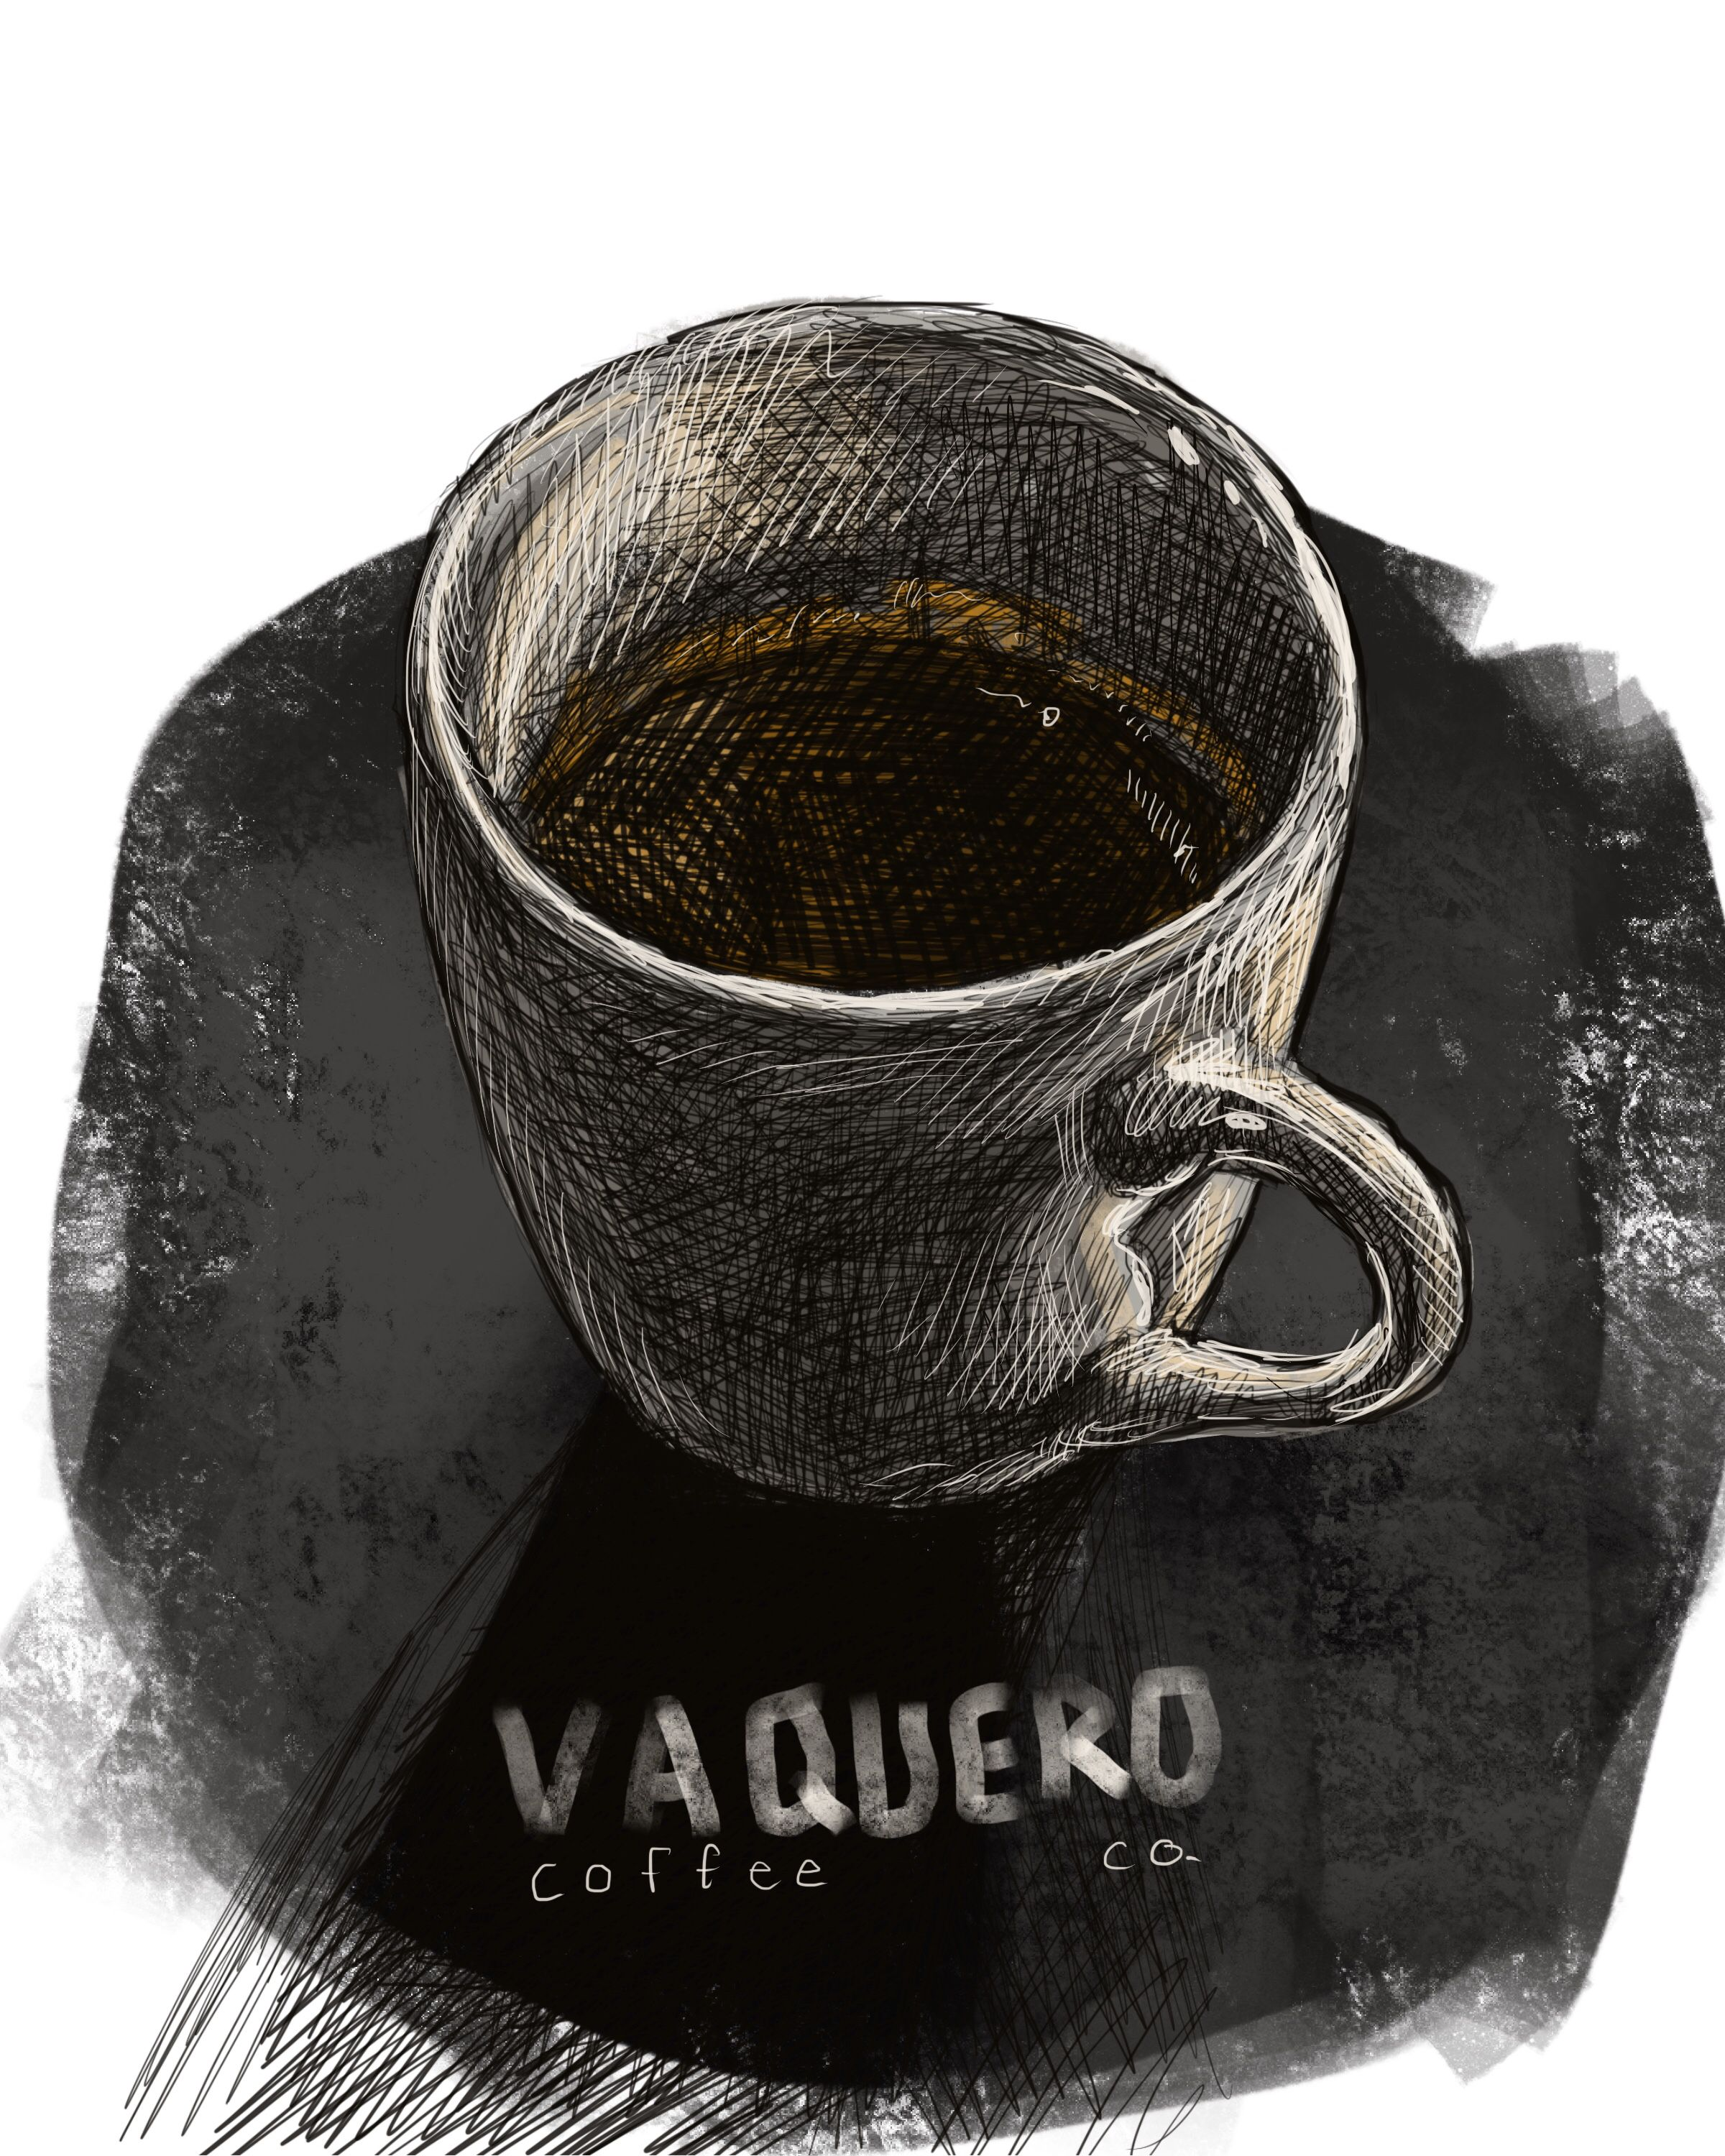 Espresso from Vaquero Coffee in downtown Fort Worth, TX.